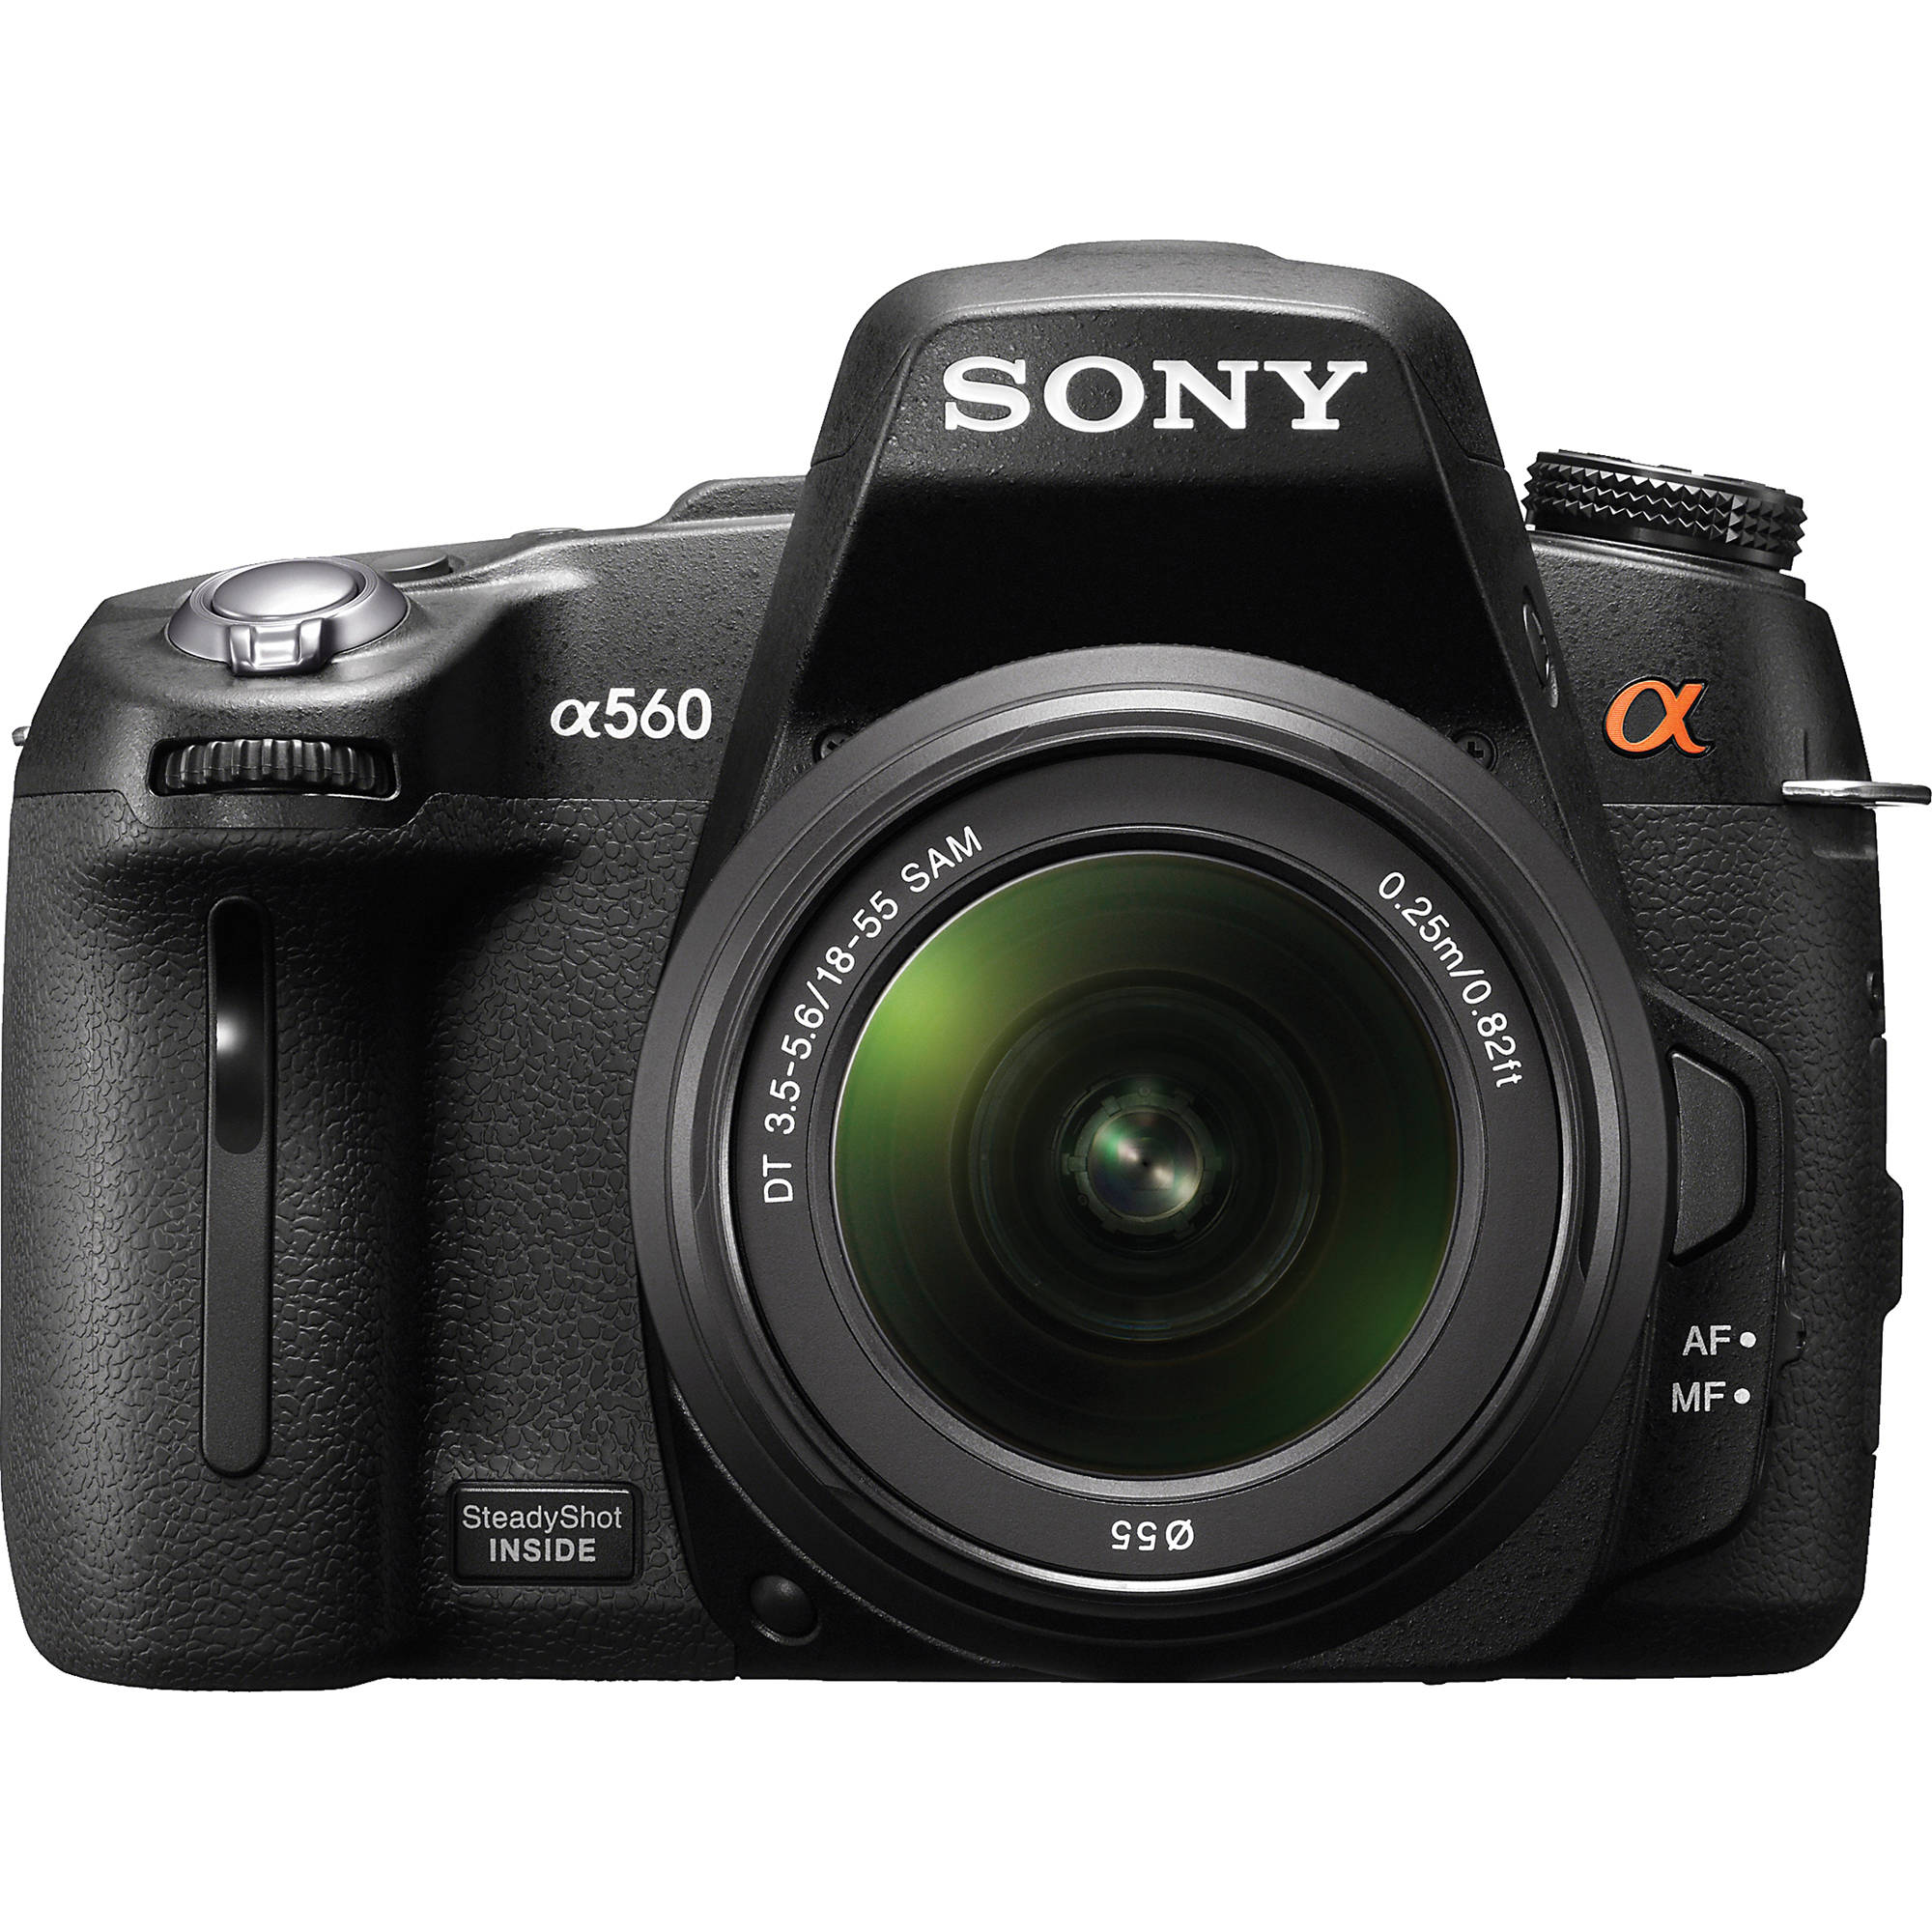 Repair of Sony DSLR-A580